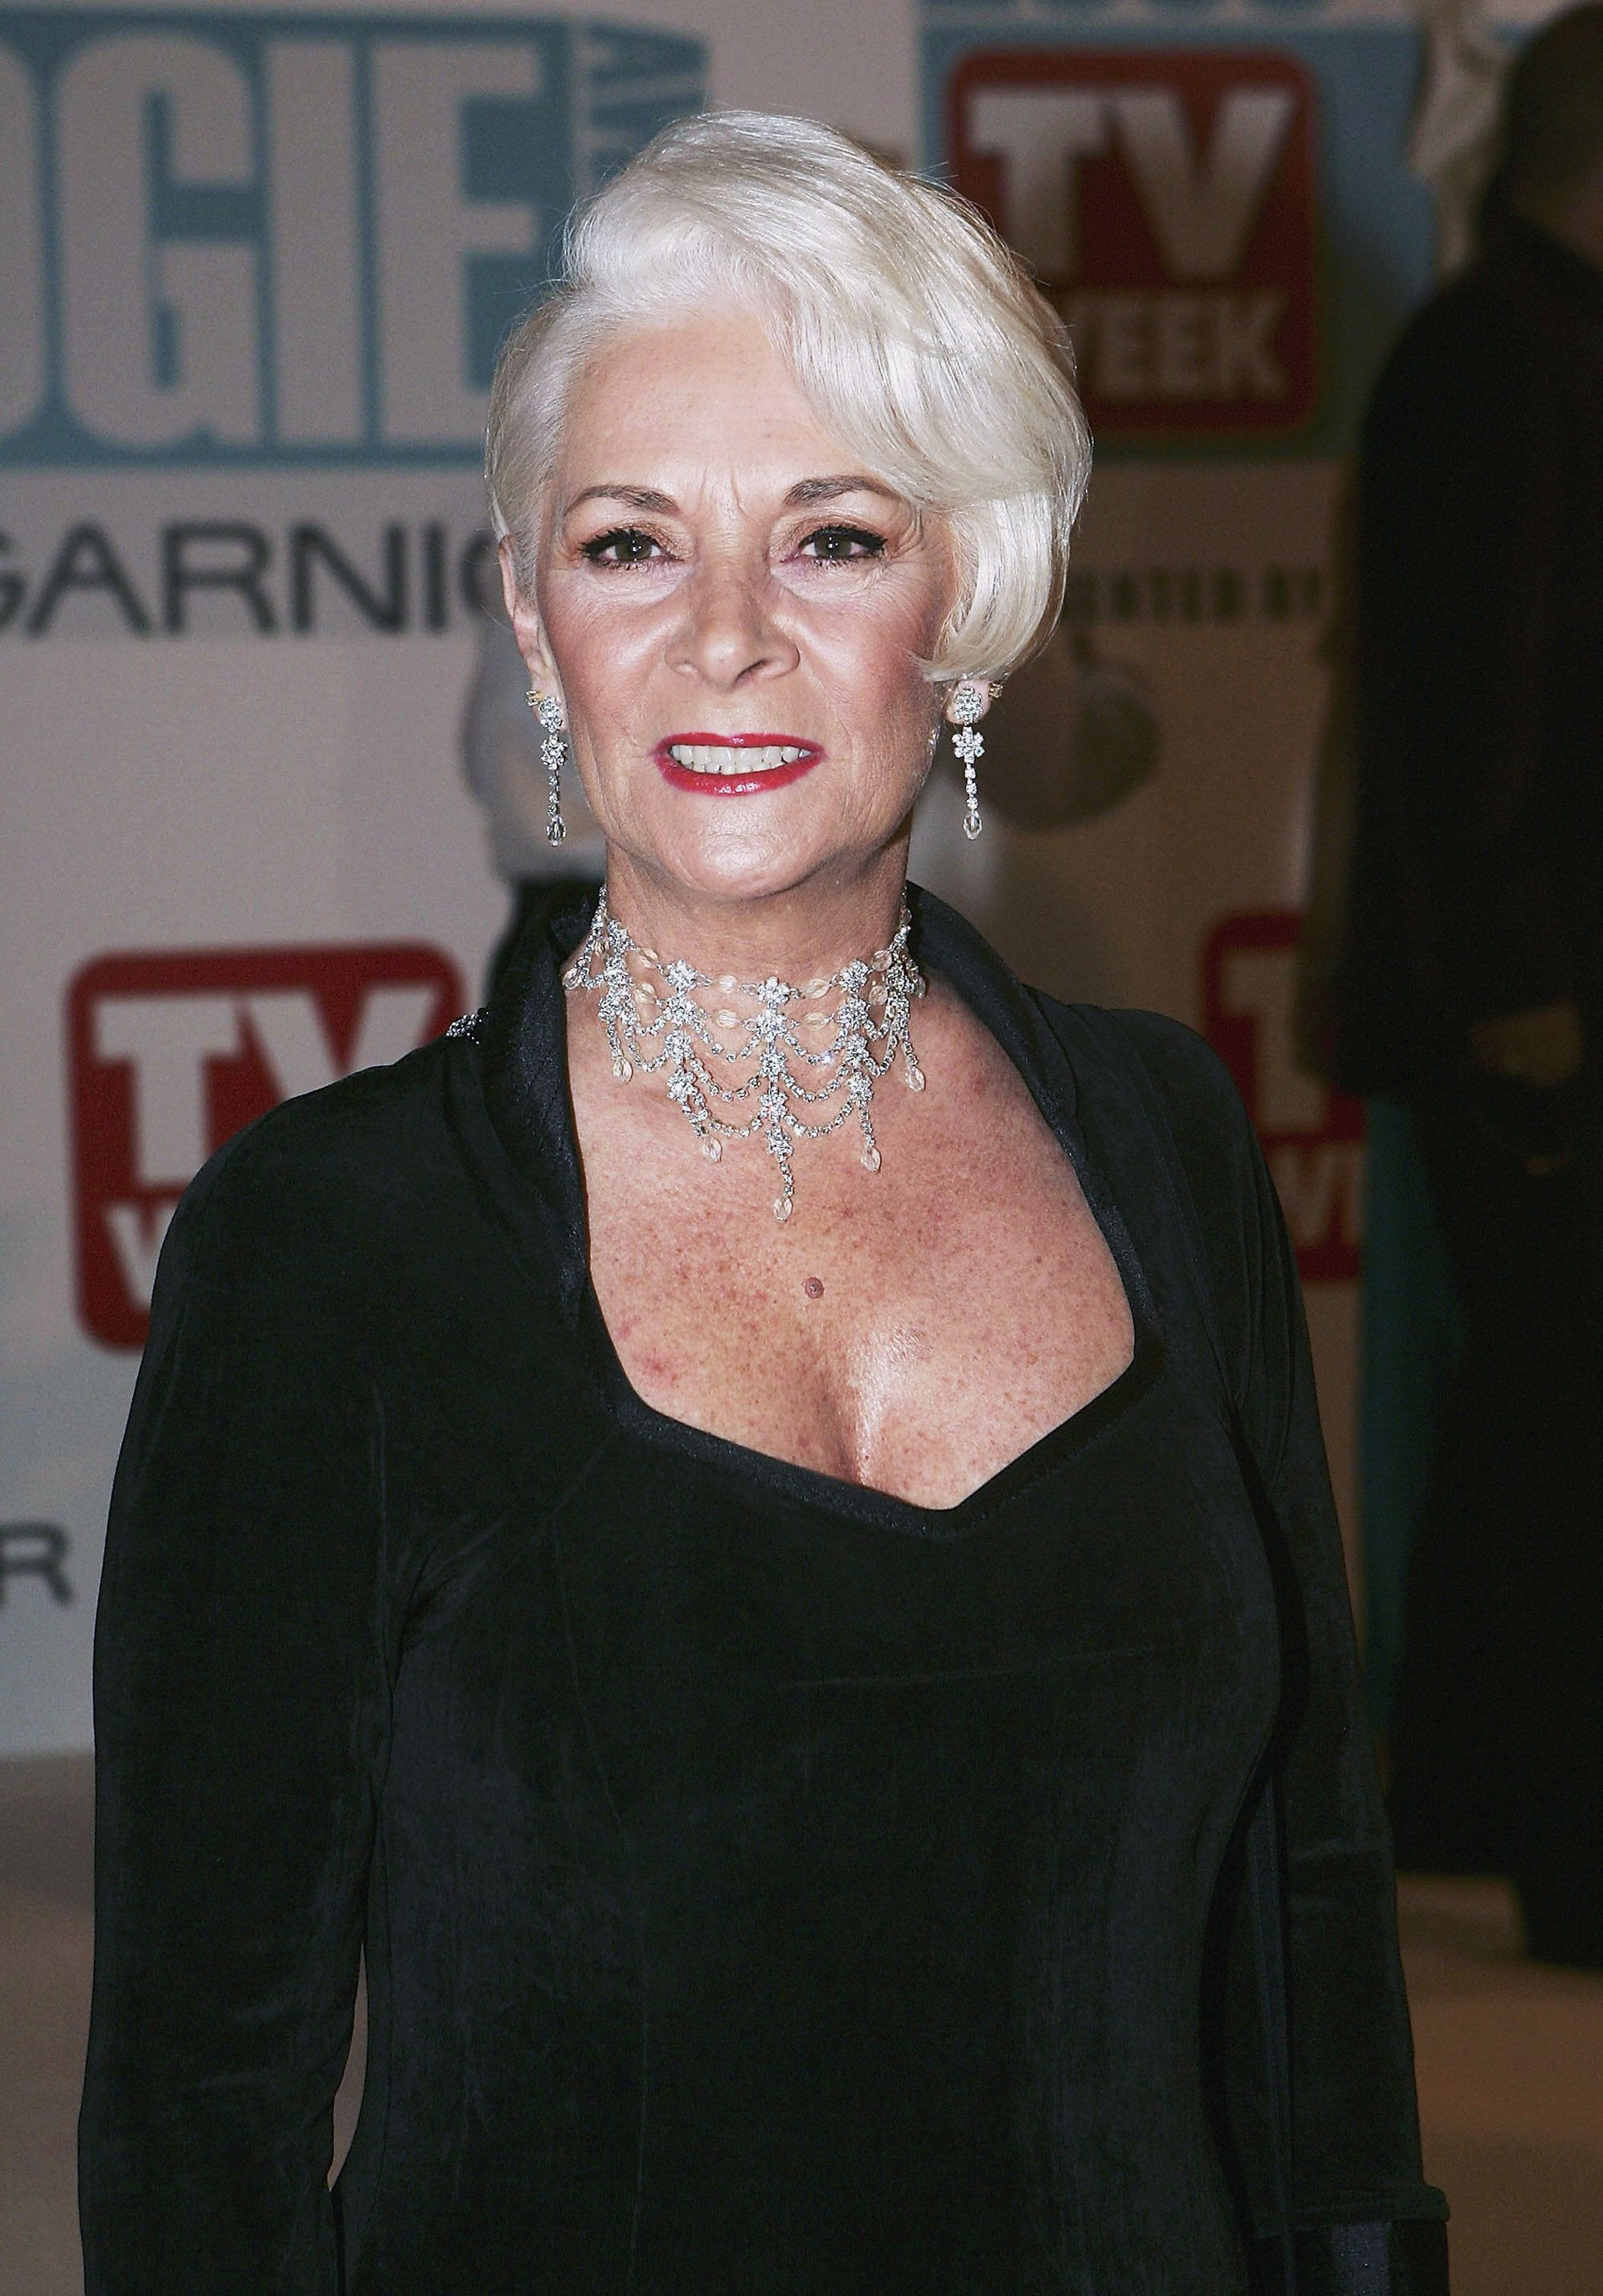 MELBOURNE, AUSTRALIA - MAY 01:   Helen Richey arrives at the 47th Annual TV Week Logie Awards at the Crown Entertainment Complex on May 1, 2005 in Melbourne, Australia.  (Photo by Patrick Riviere/Getty Images)